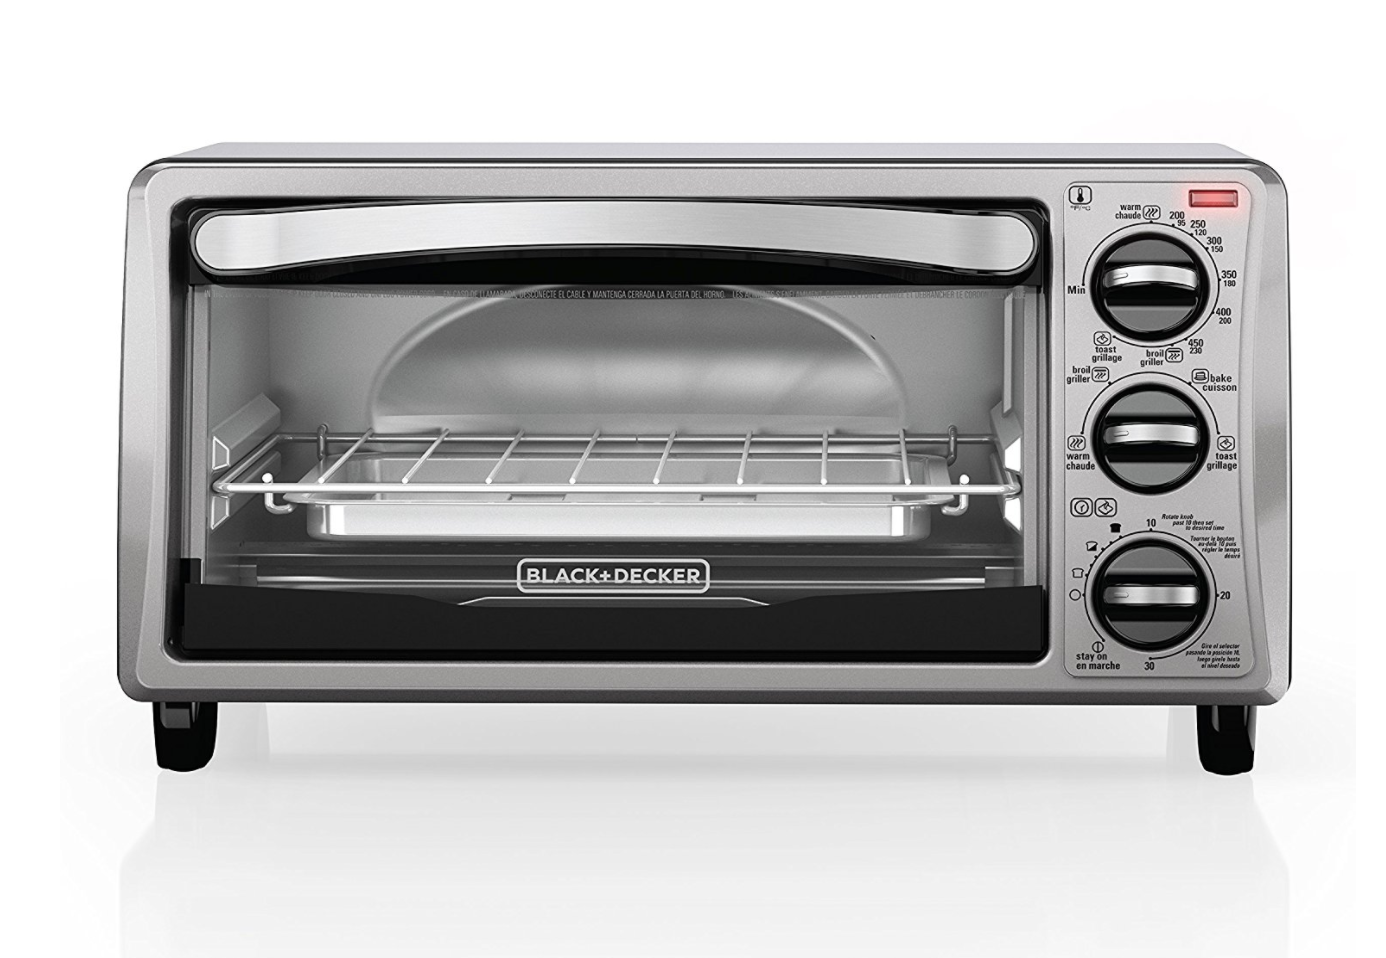 Best Toaster Ovens 2017 Buyer 39 S Guide Topratedanything Toaster Oven Toaster Convection Toaster Oven